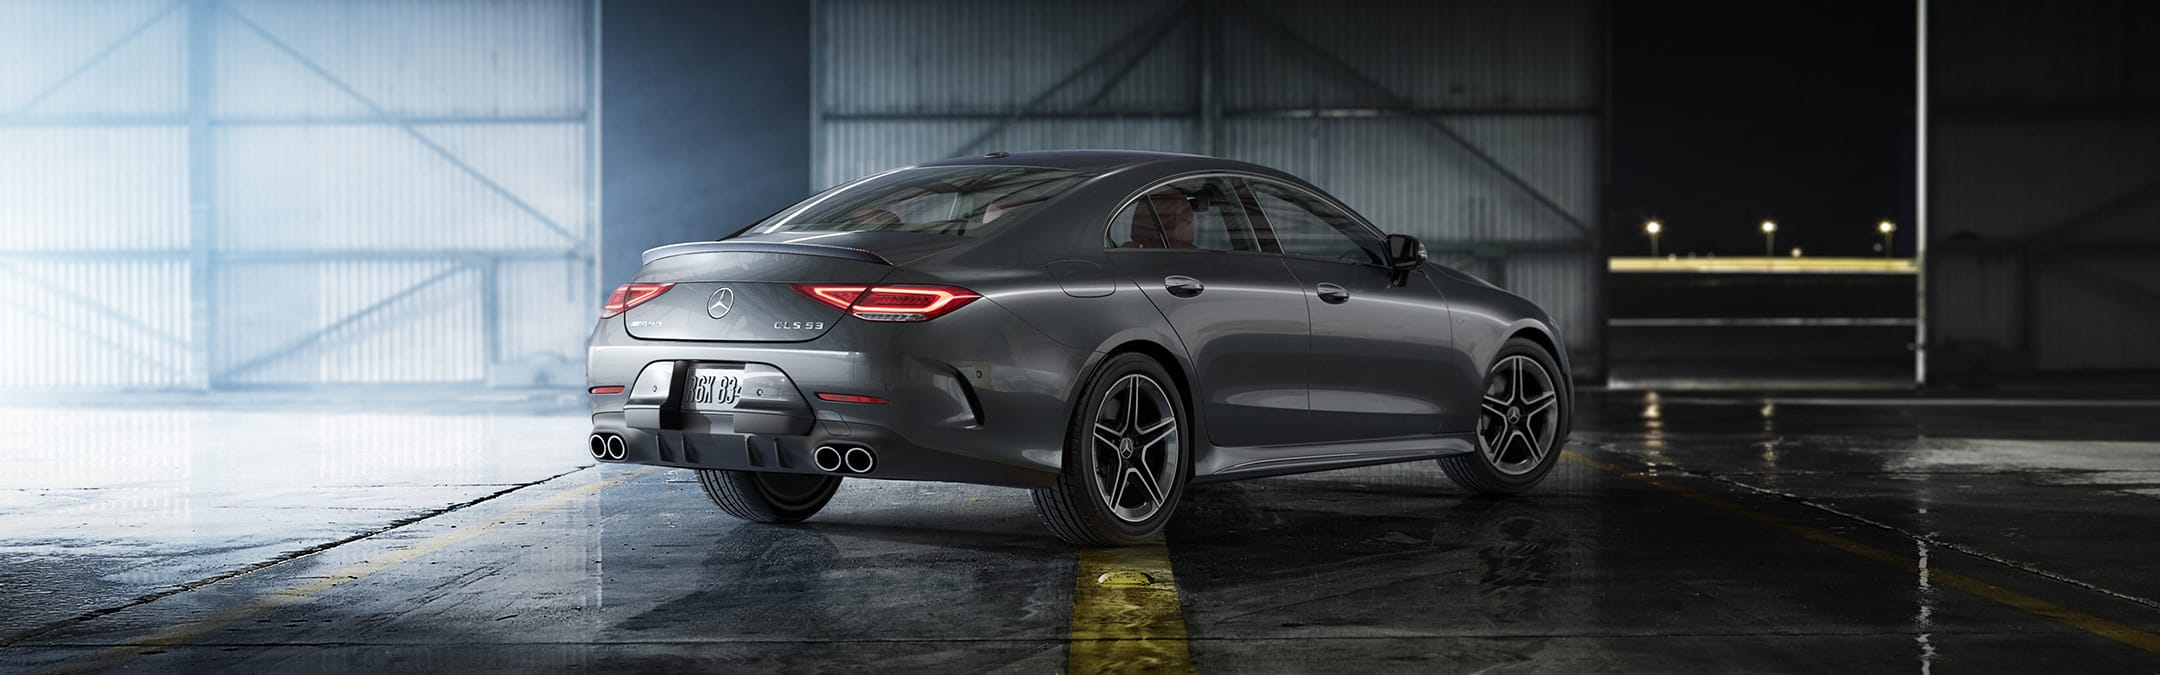 2019 AMG CLS Coupe